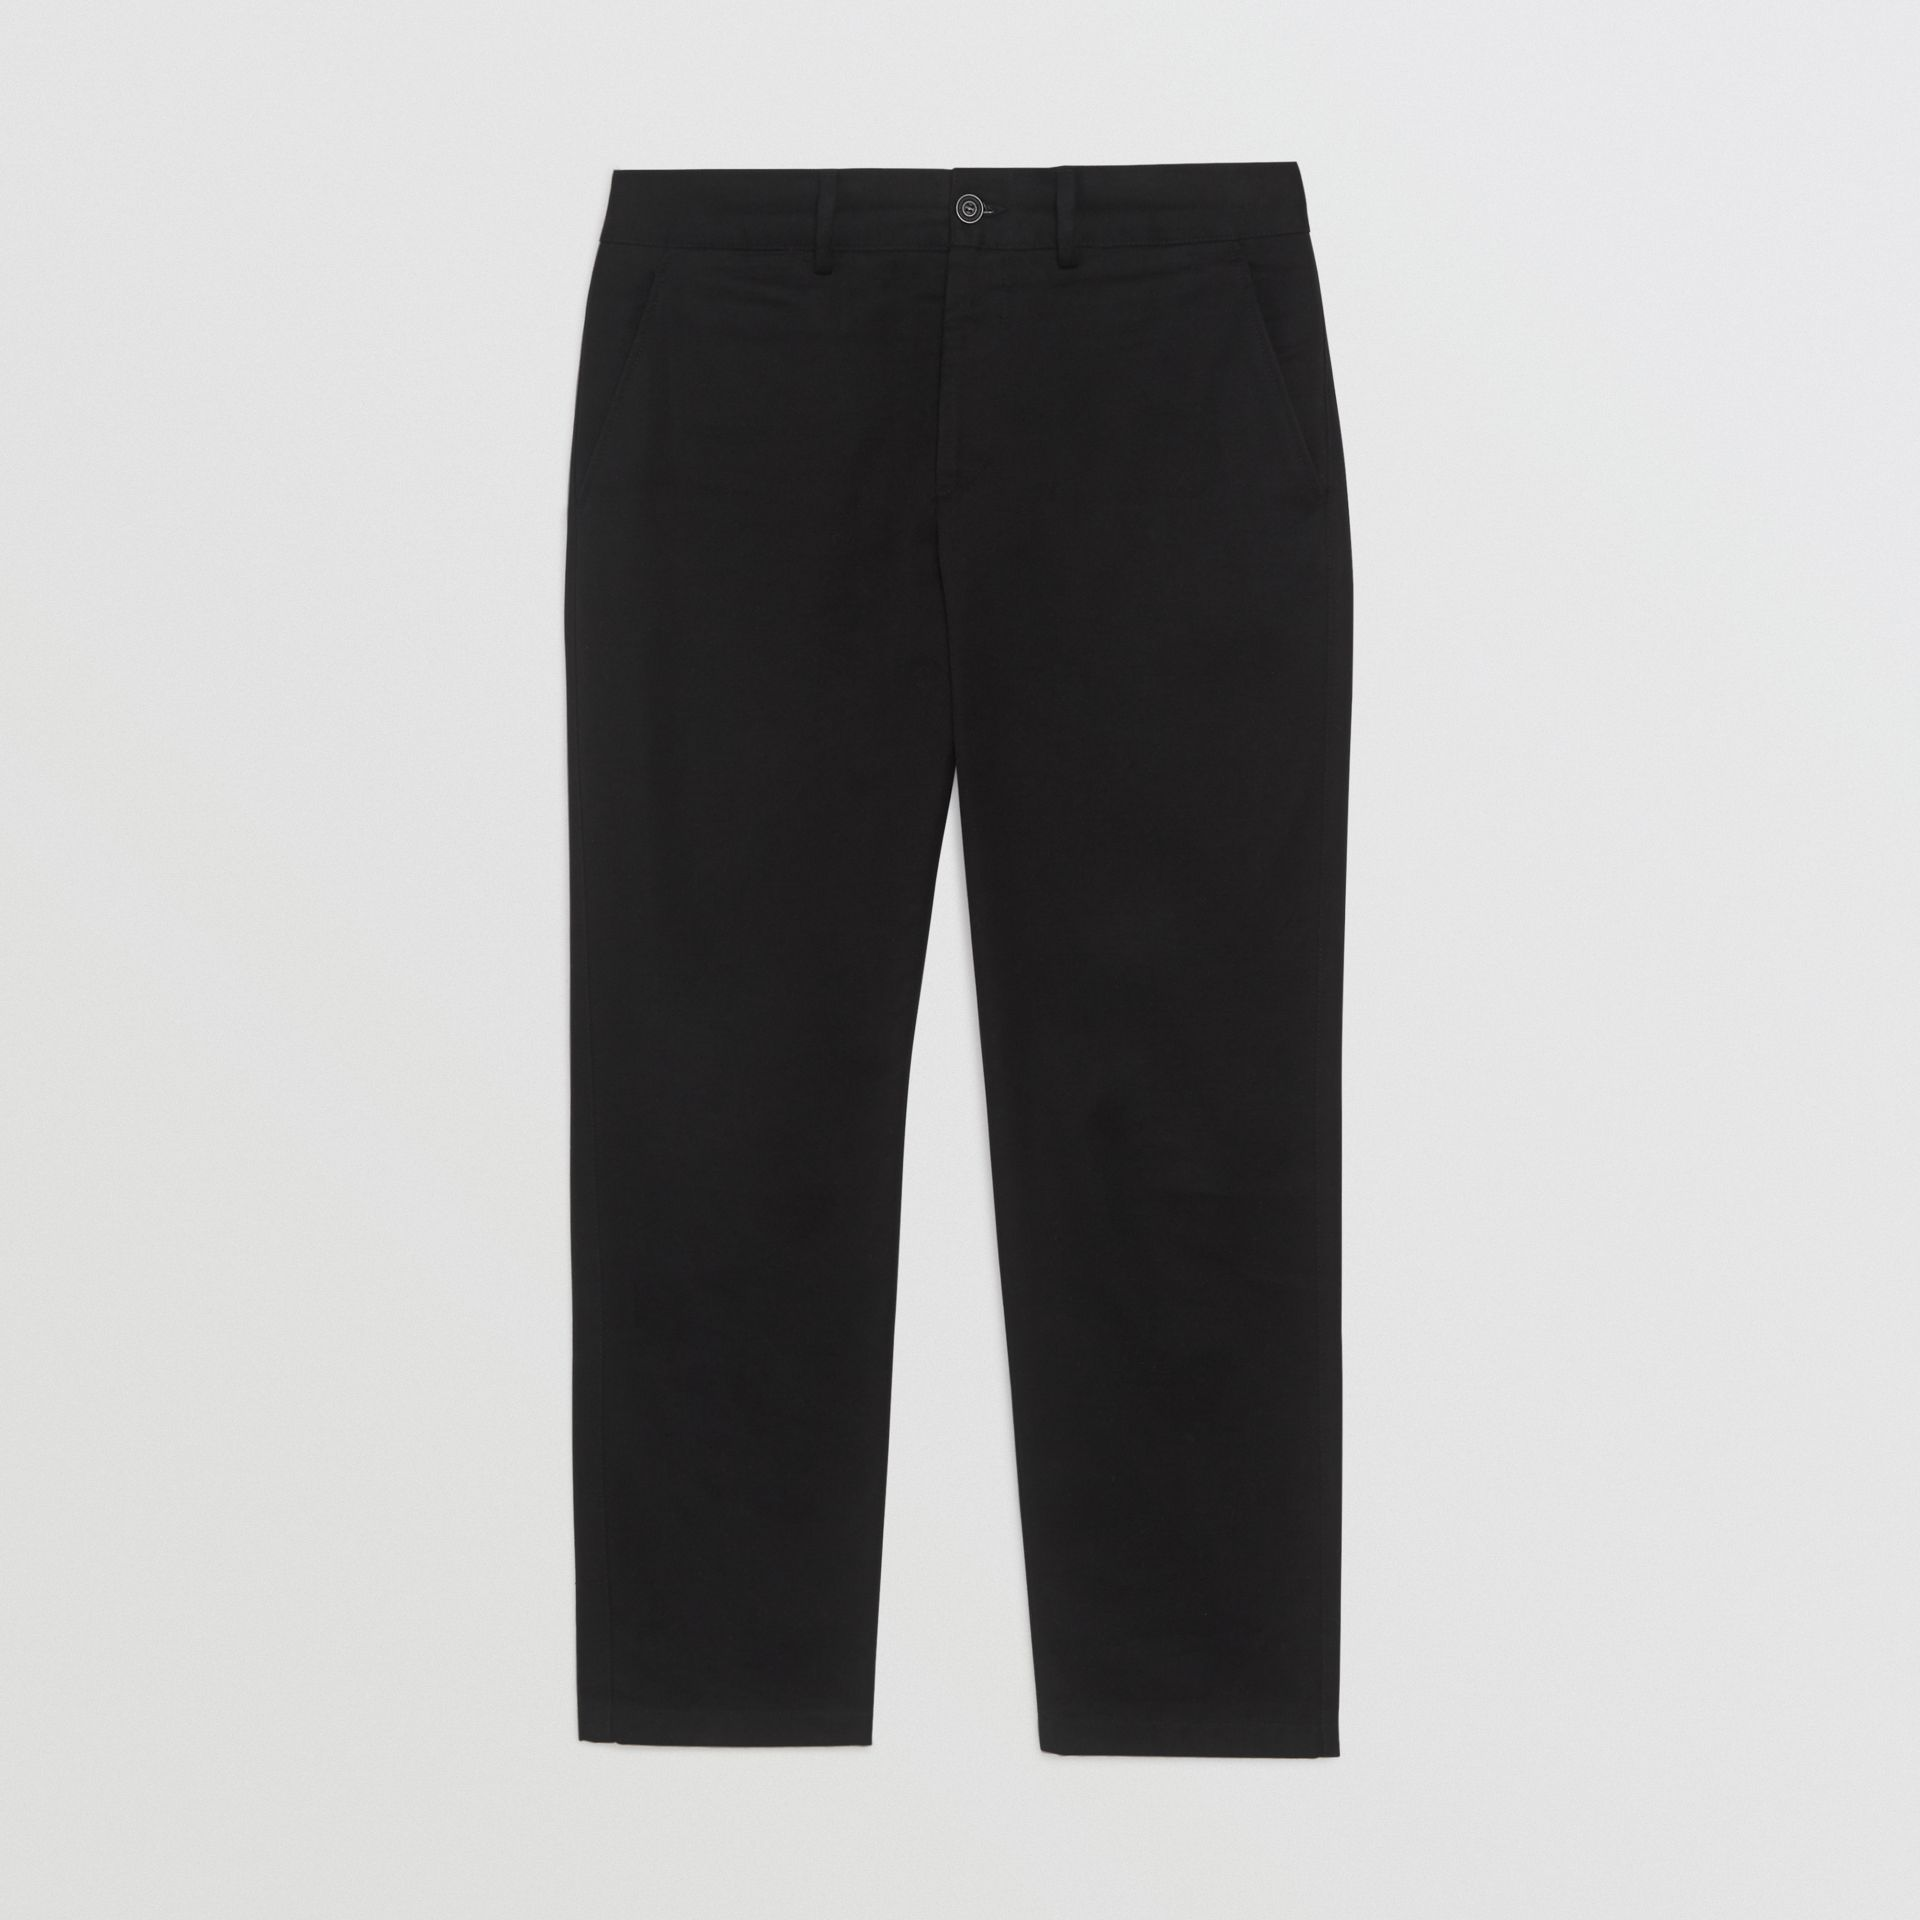 Slim Fit Cotton Blend Chinos in Black - Men | Burberry Canada - gallery image 3